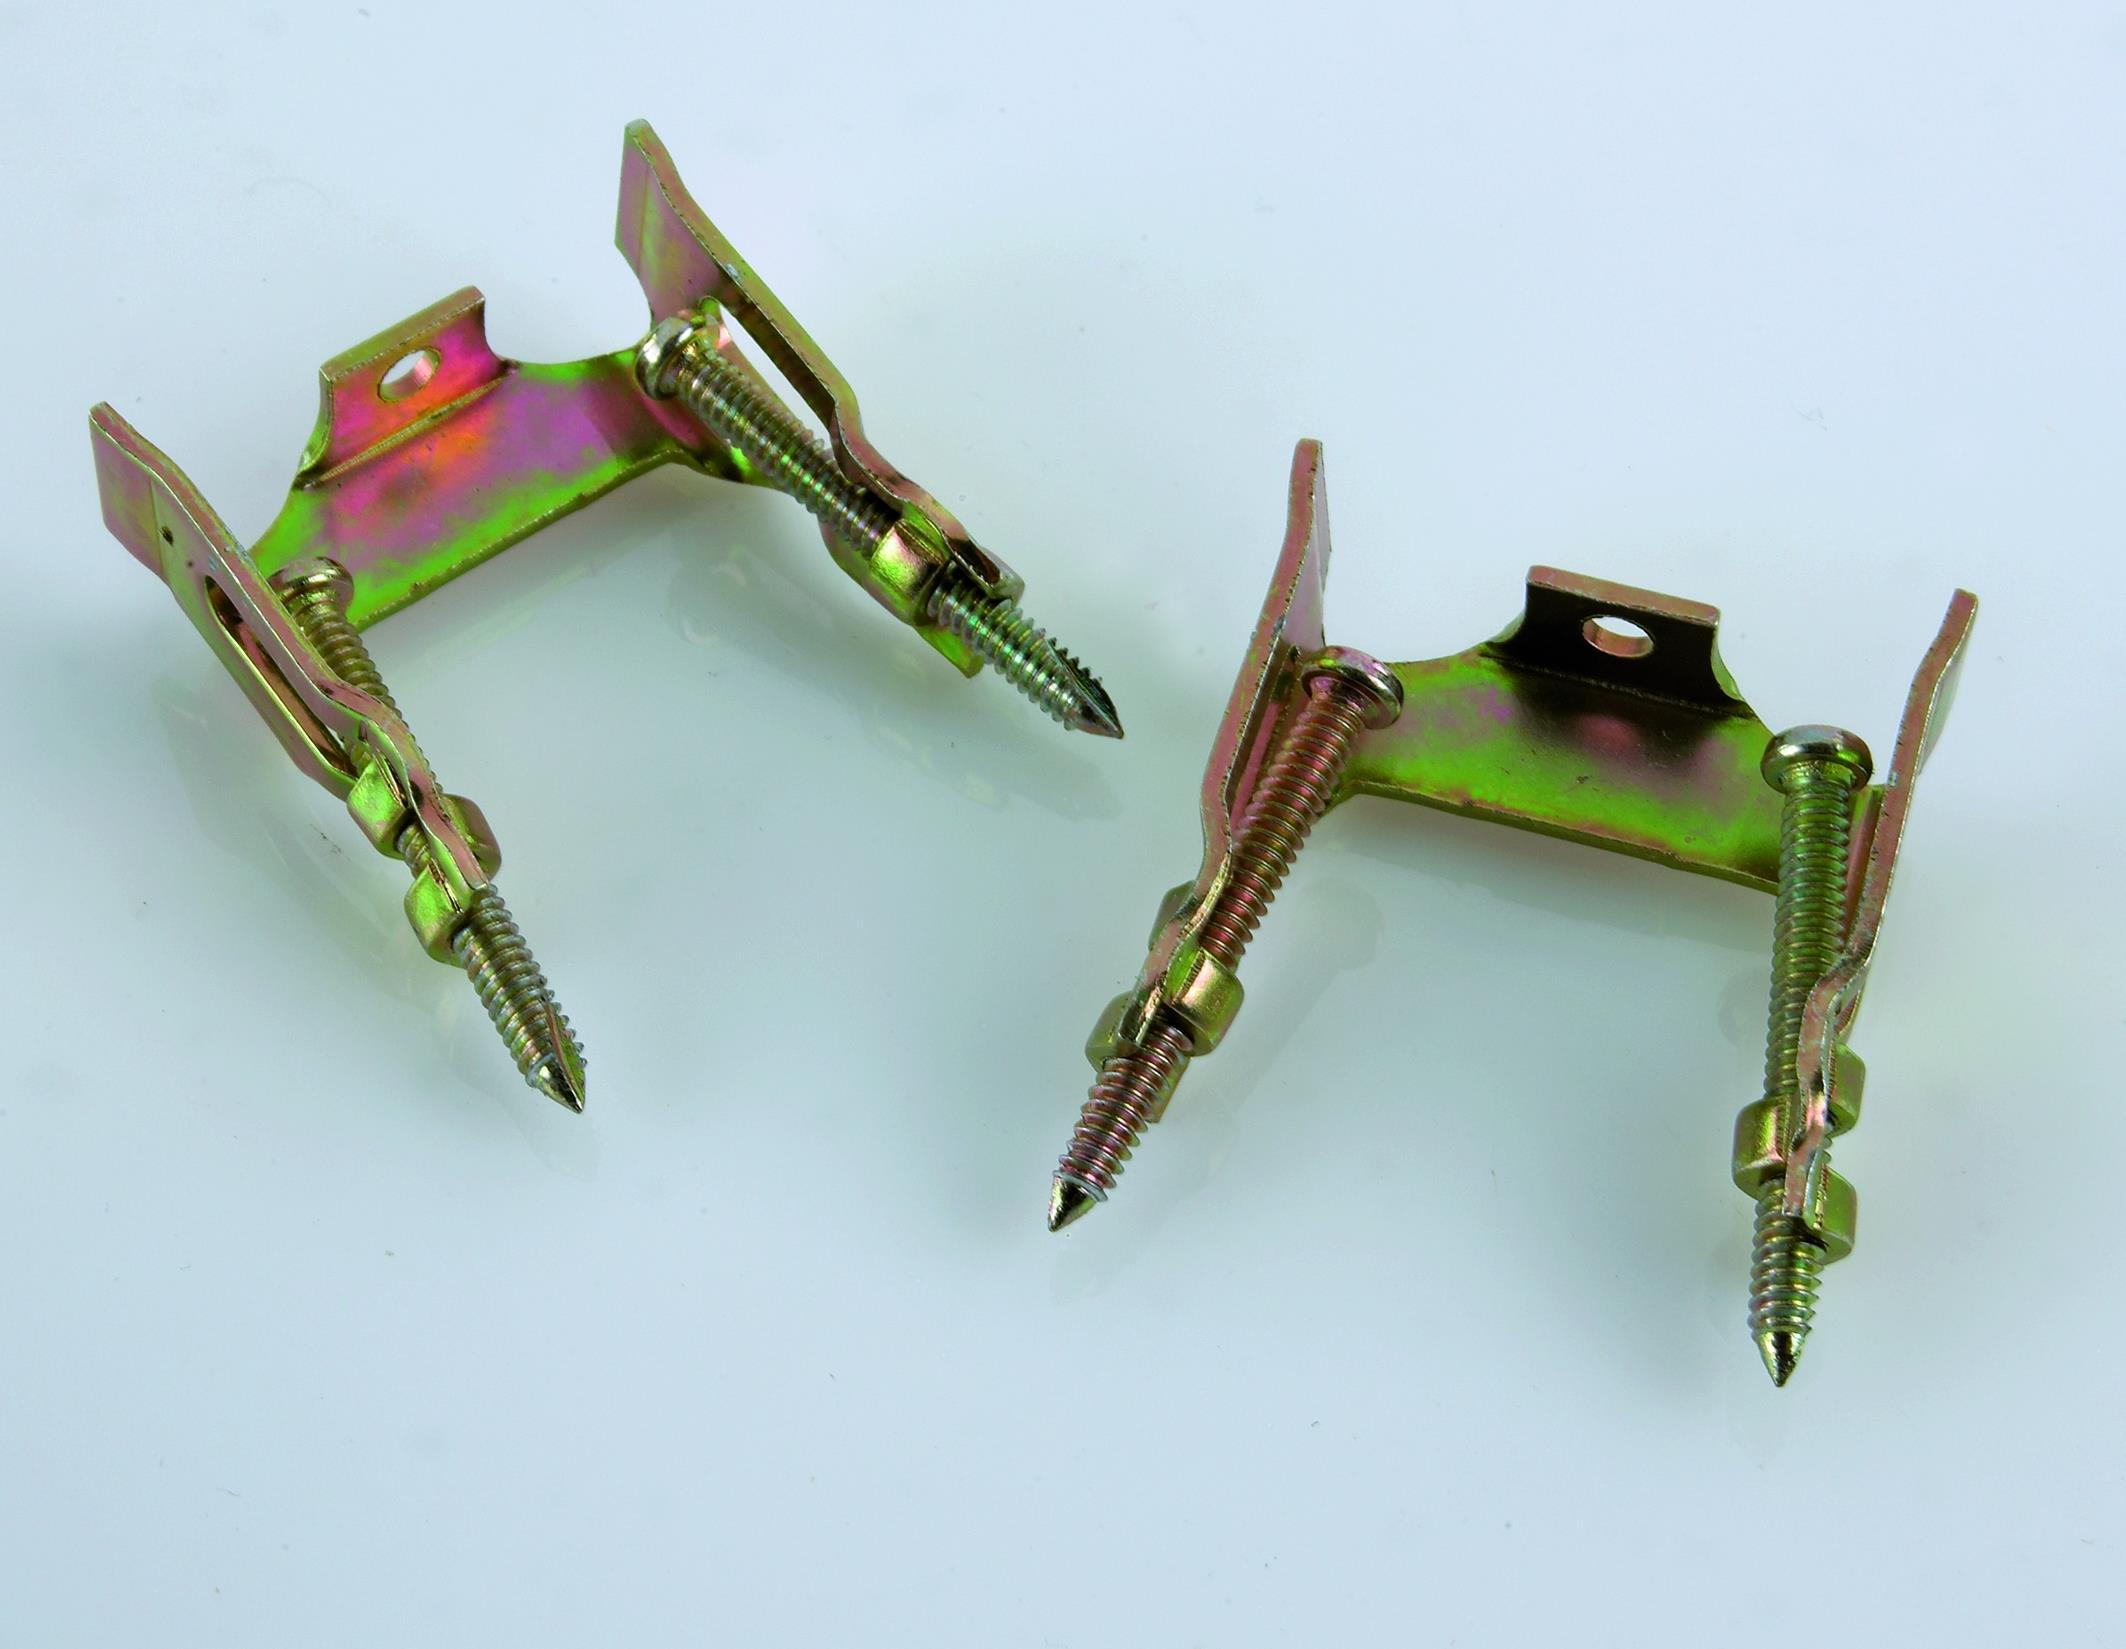 4104 and 4075 - Mounting Bridges and Installation Tool